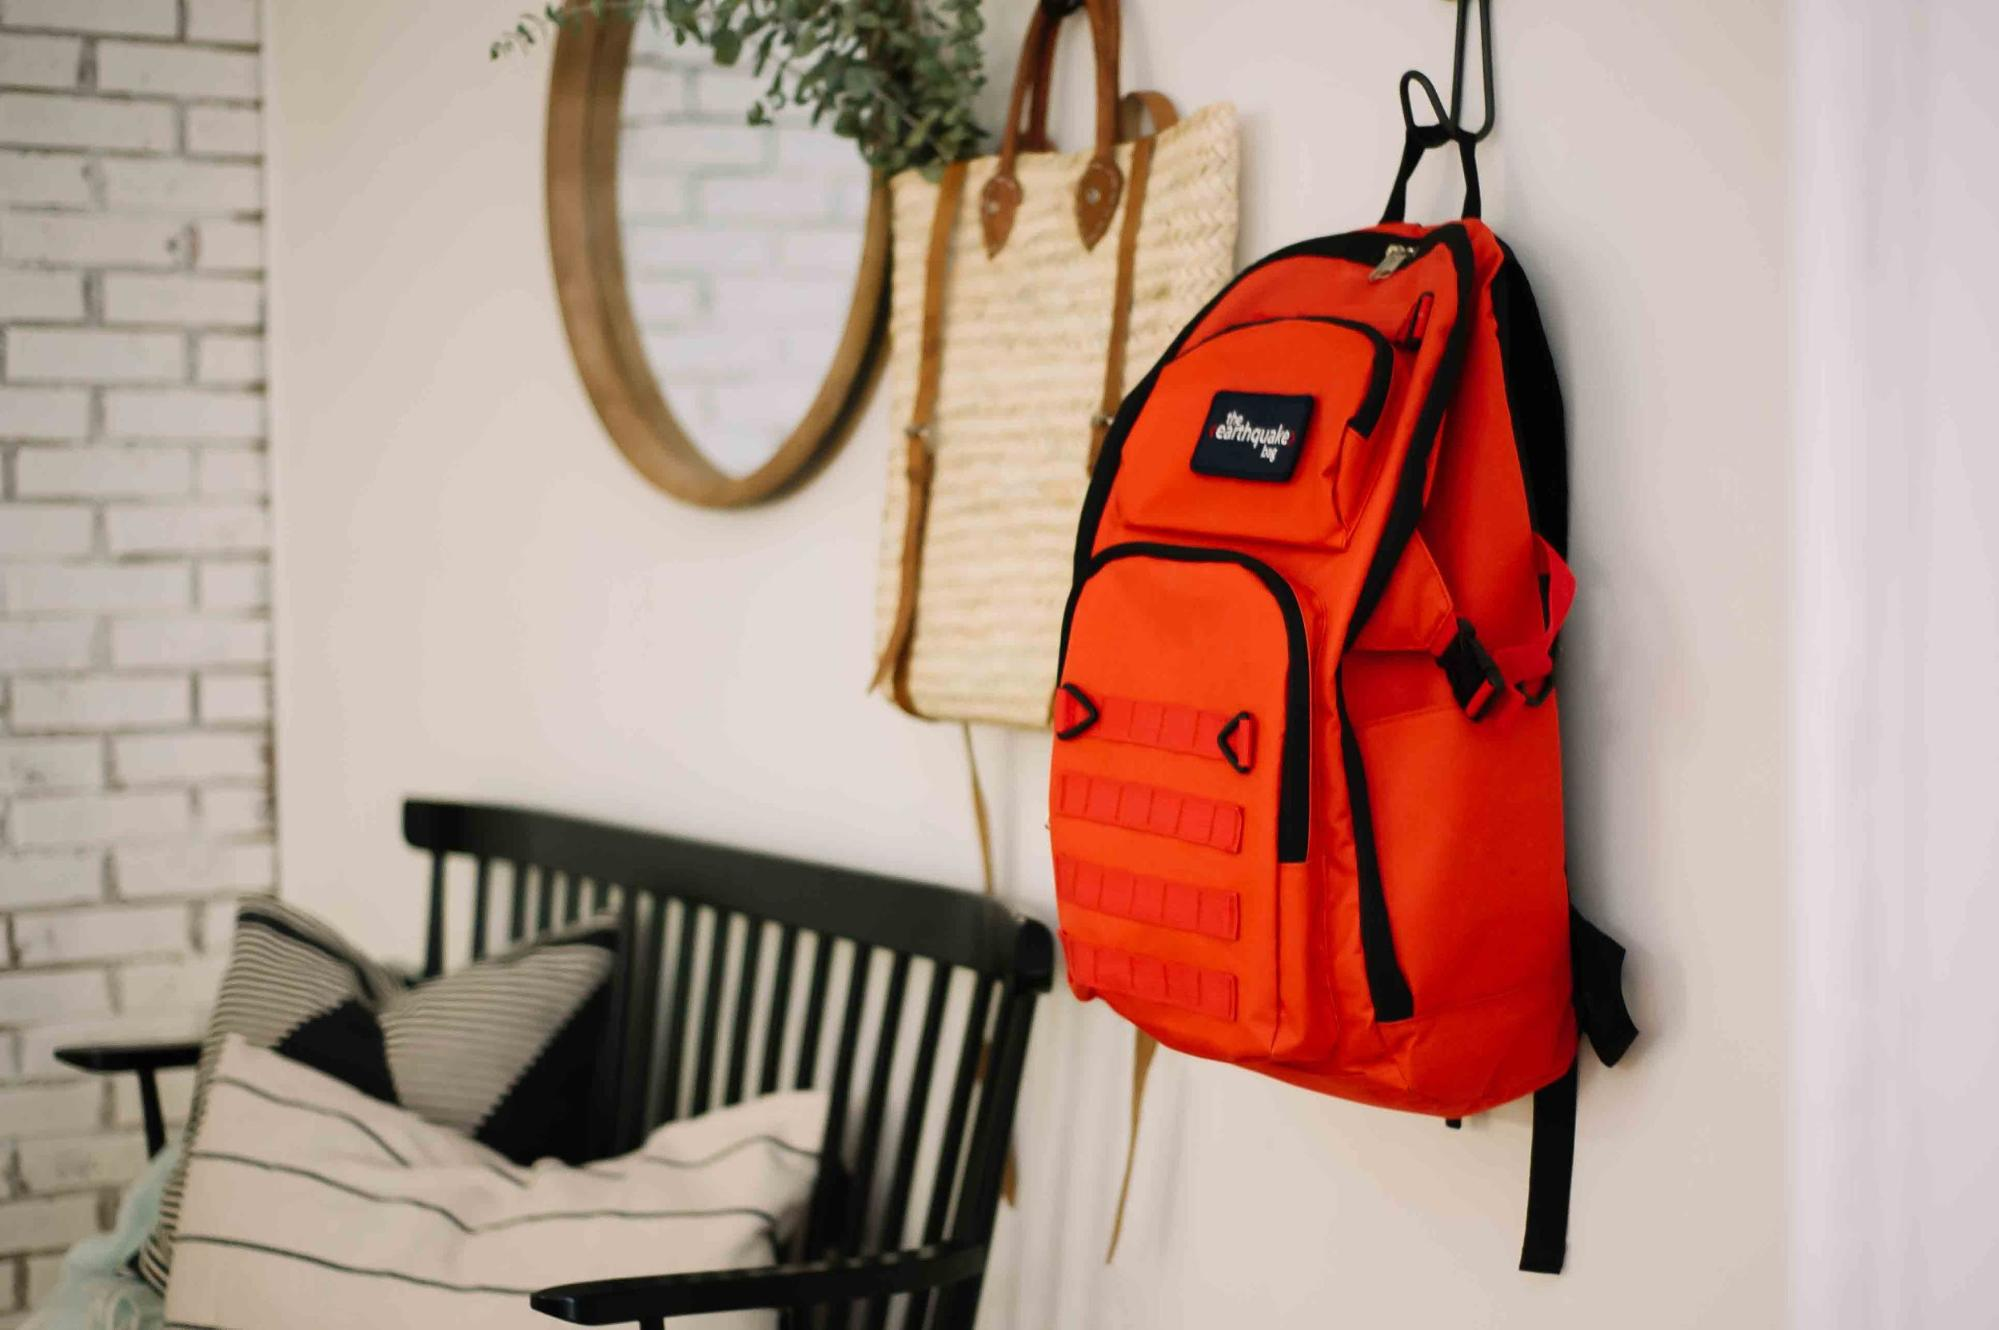 A Redfora backpack with emergency supplies on a coat hanger.